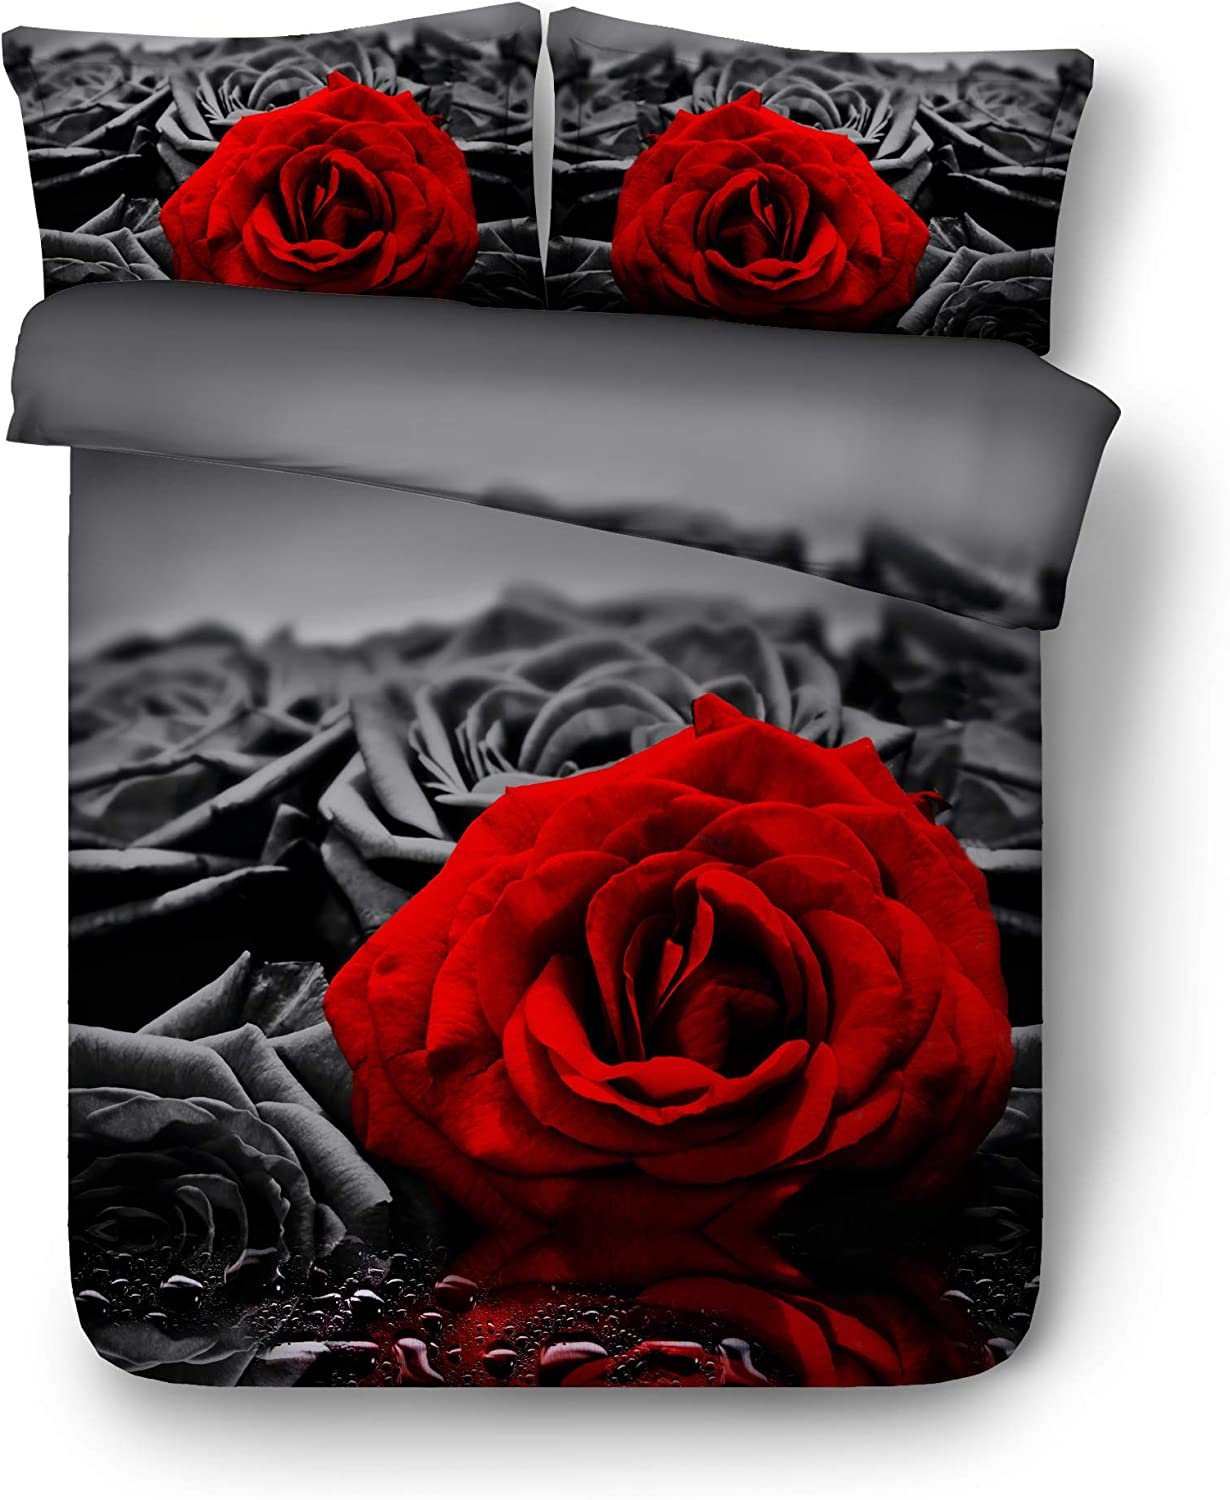 Newrara 3d Bedding Sets Red Rose 3d Digital Printed Grey 4pcs 100 Cotton Soft Bedding Set Duvet Cover Set Grey King Amazon Ca Home Kitchen